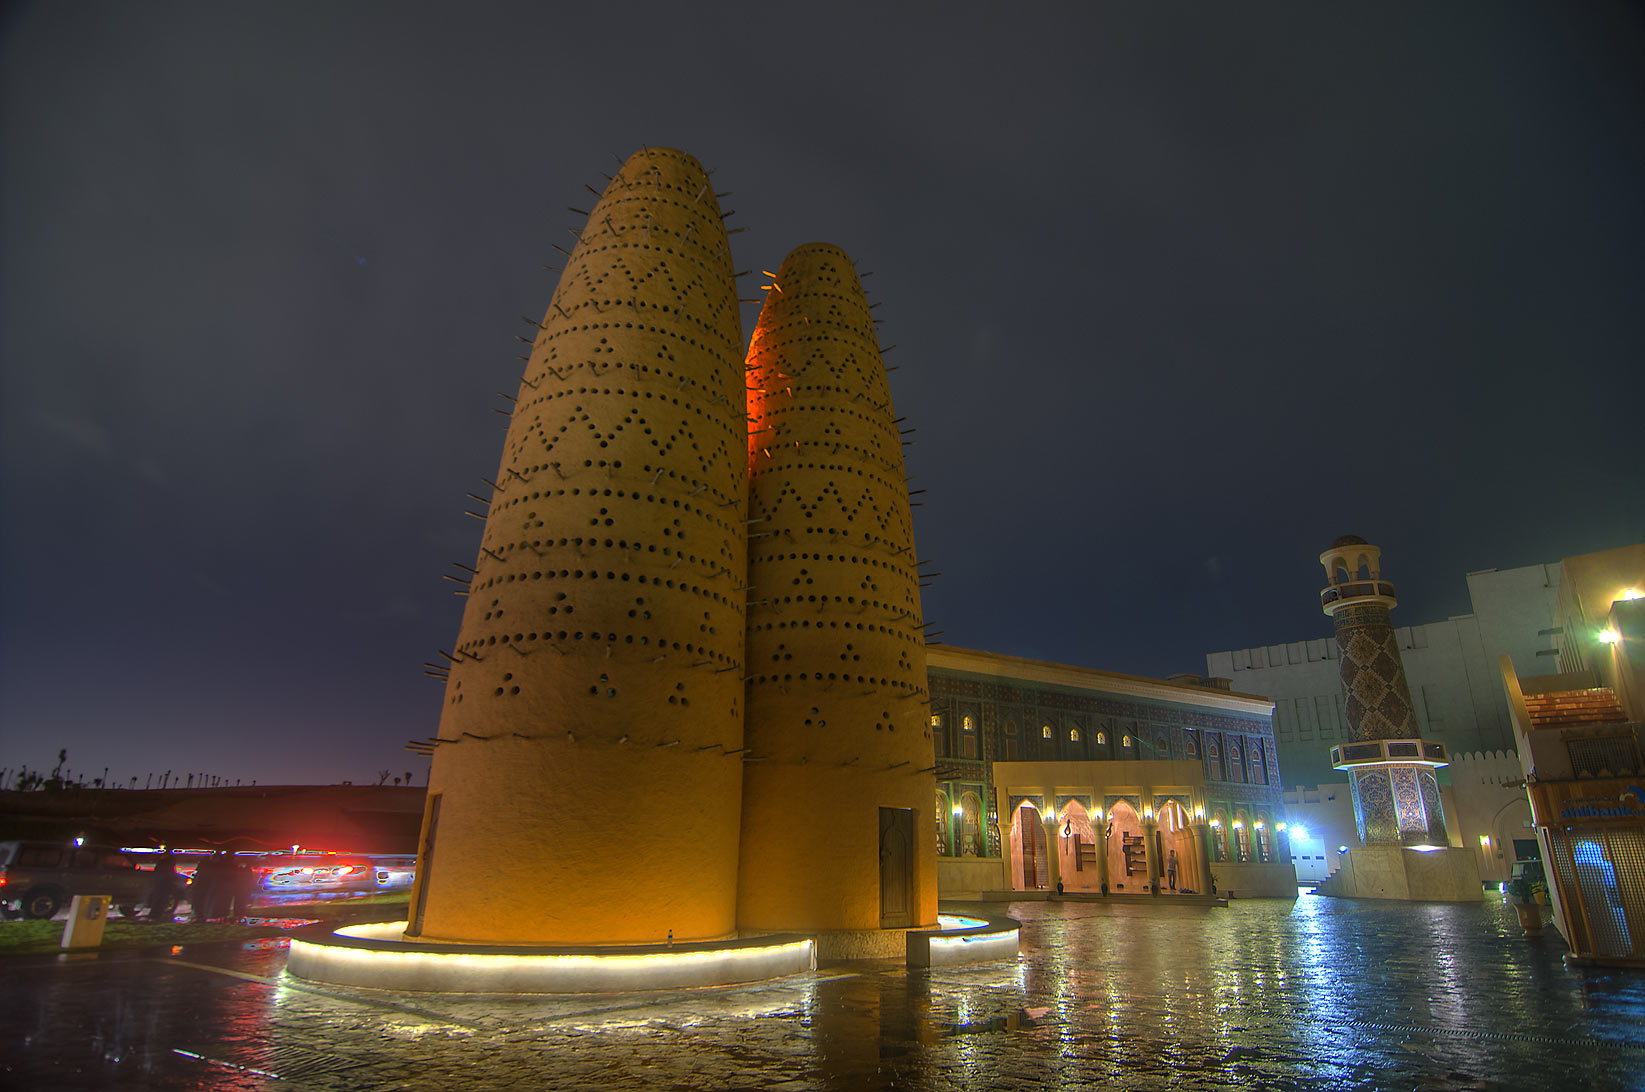 Dovecote (house for pigeons) and Iranian style...Cultural Village at rain. Doha, Qatar